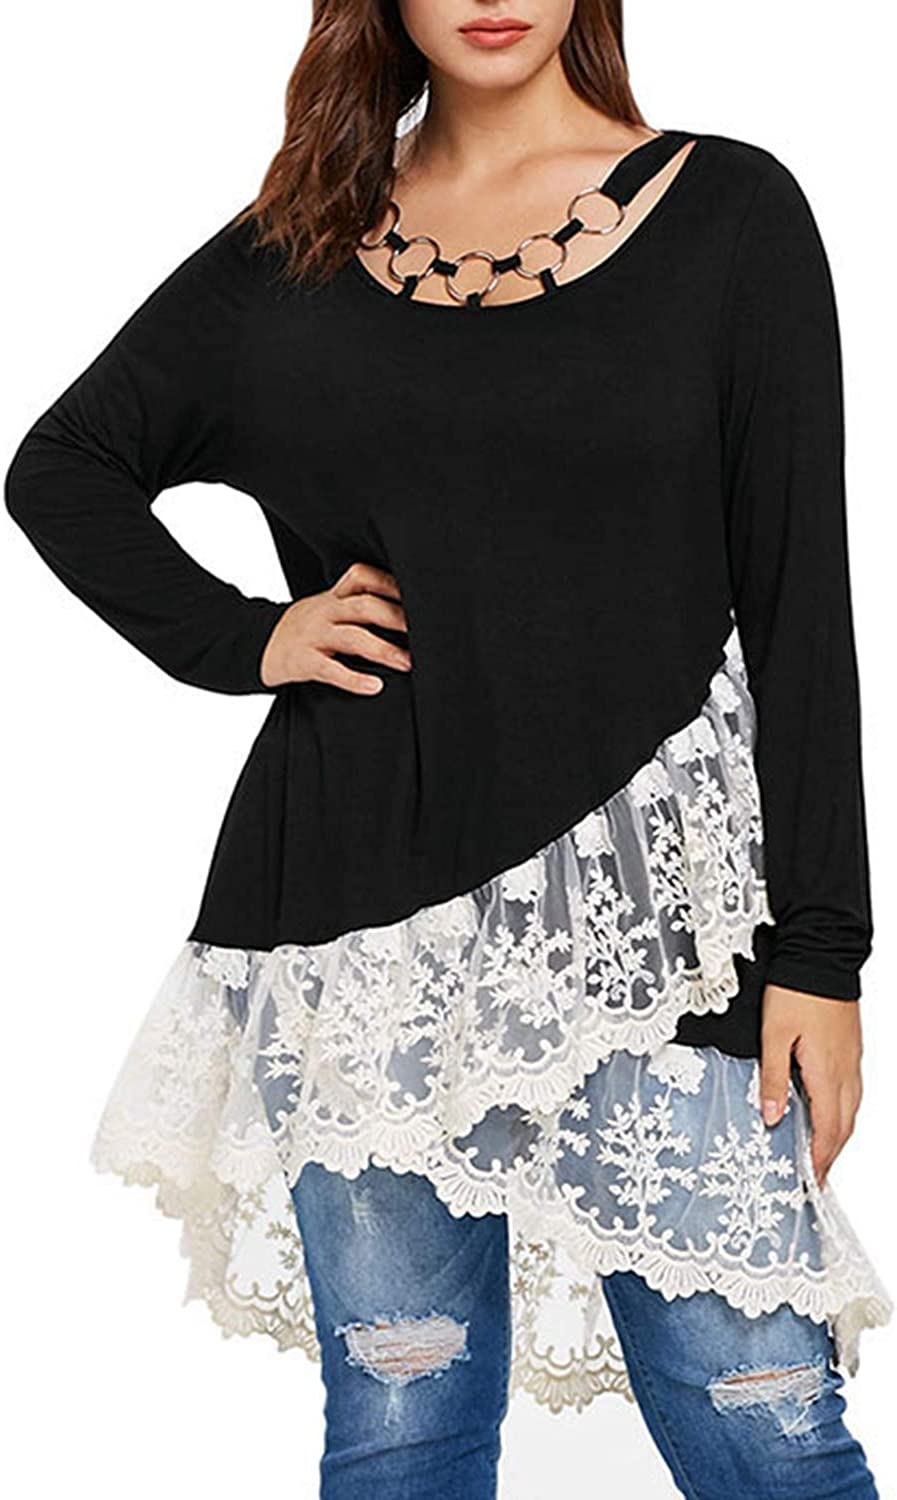 Desirca Plus Size 5XLL White Floral Lace Black Long Tops Women Long Sleeve Autumn Spring Tunic Blouses Ladies Big Size